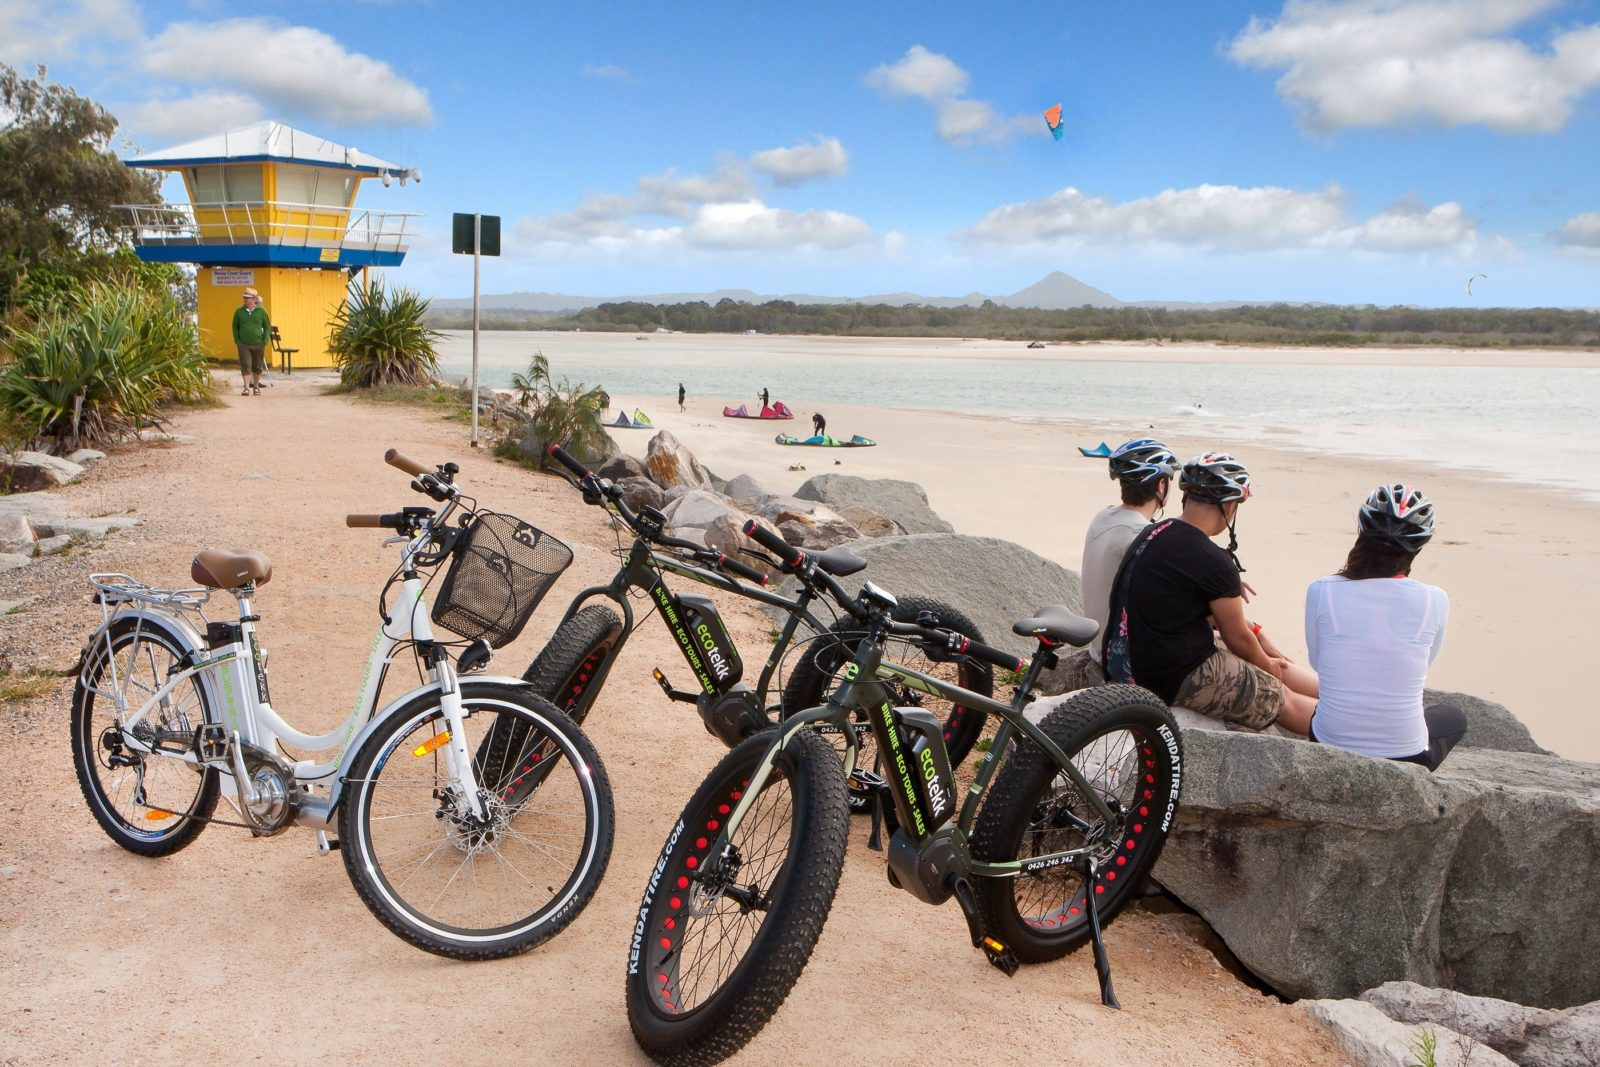 At the Noosa River mouth looking across to Noosa North Shore